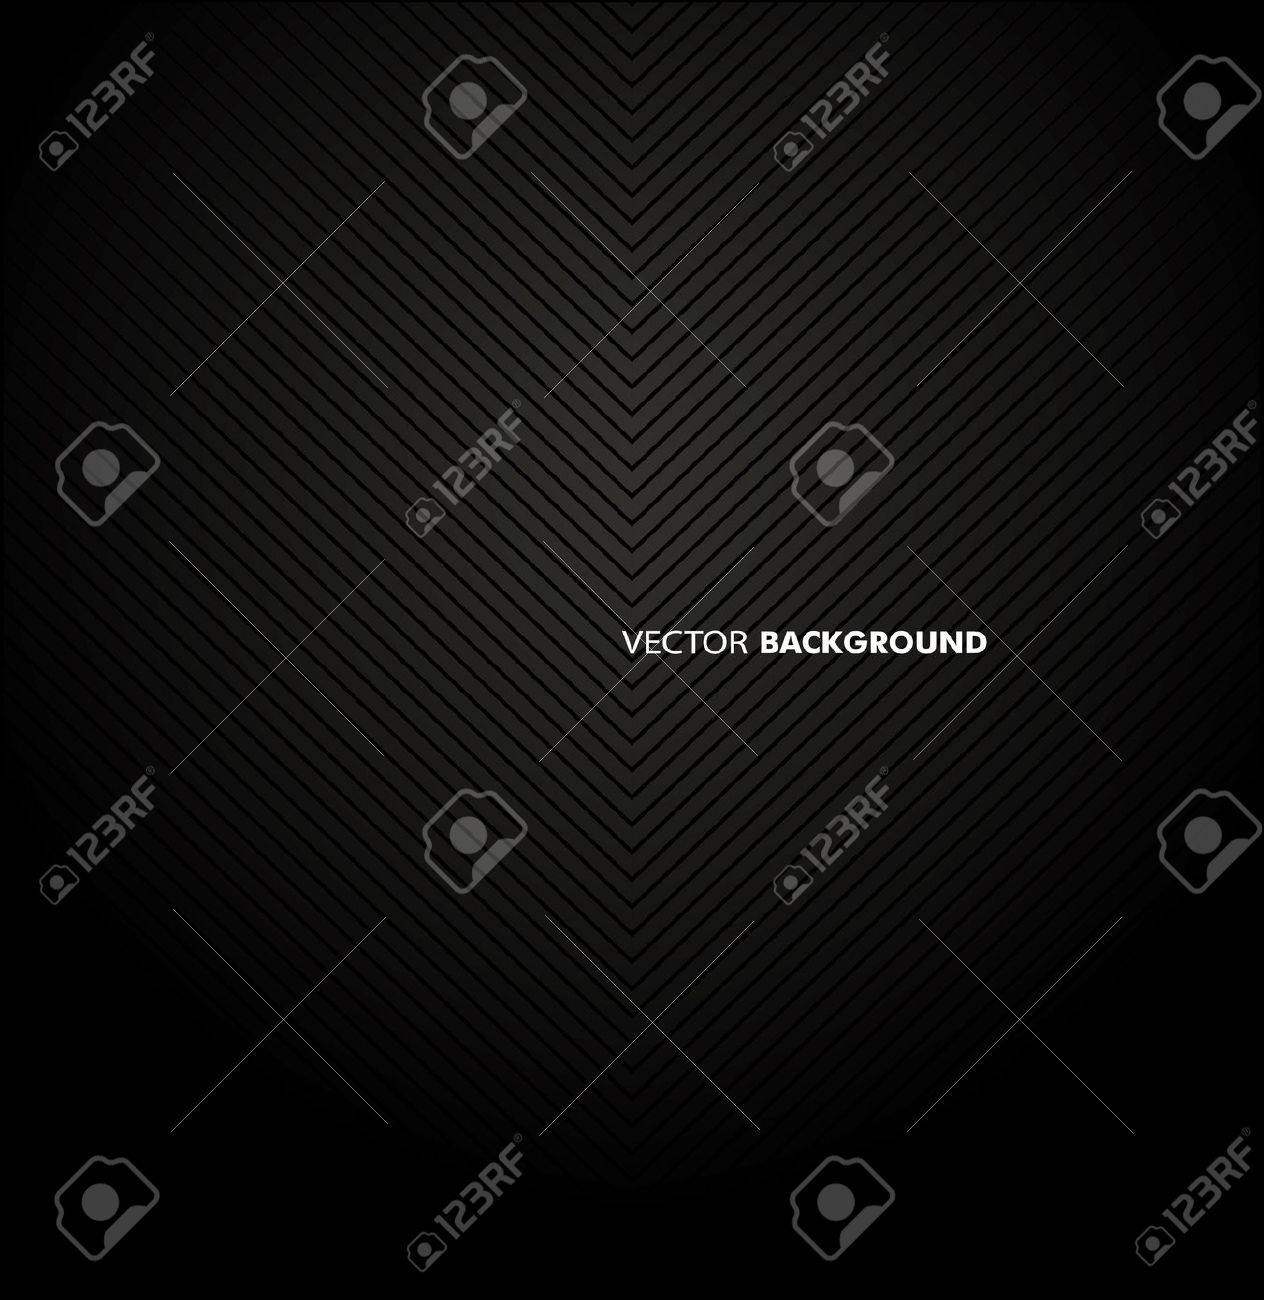 Chrome black background. Stock Vector - 33511273